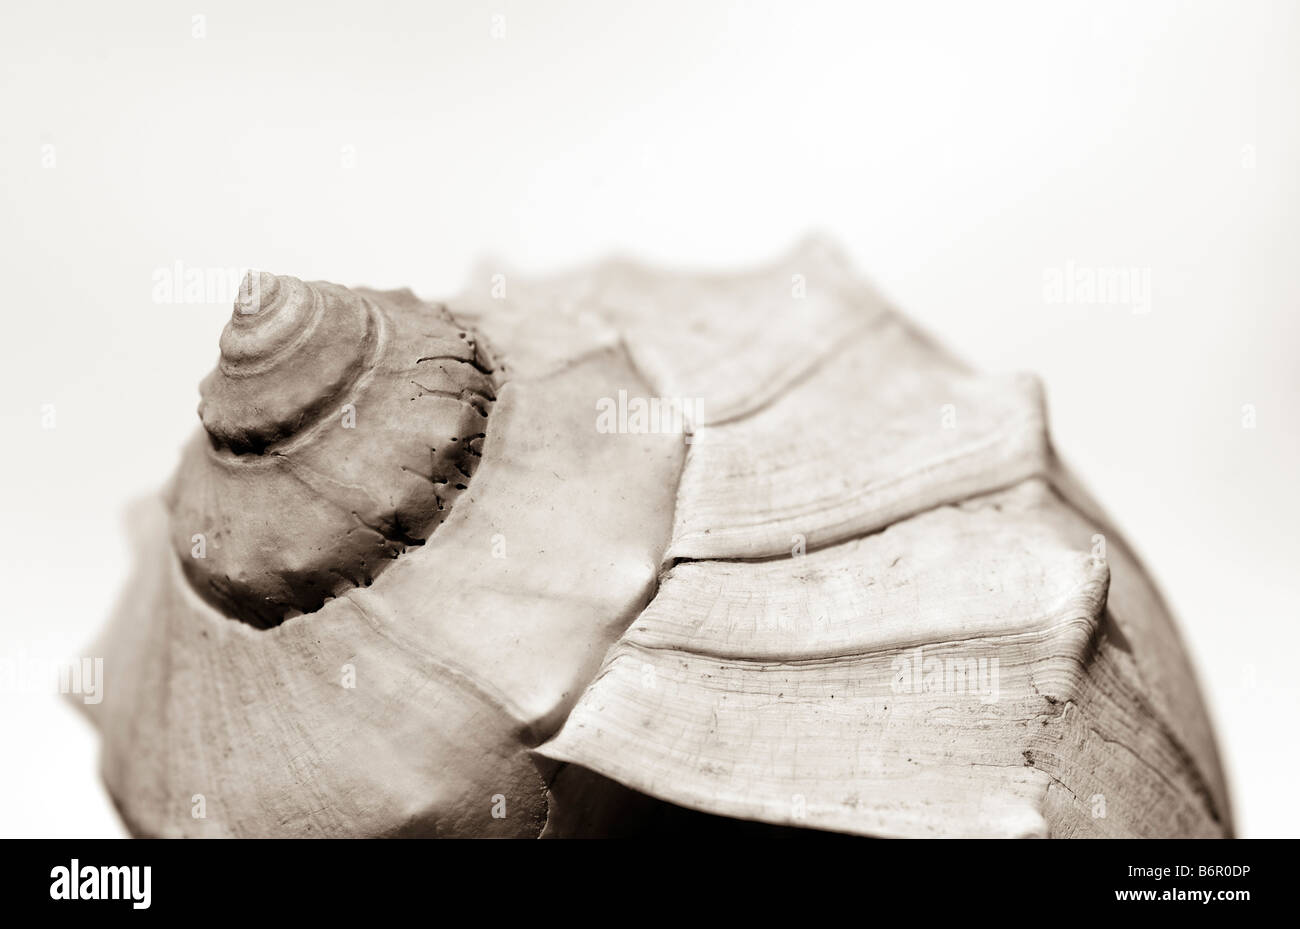 Mollusk shell - Stock Image